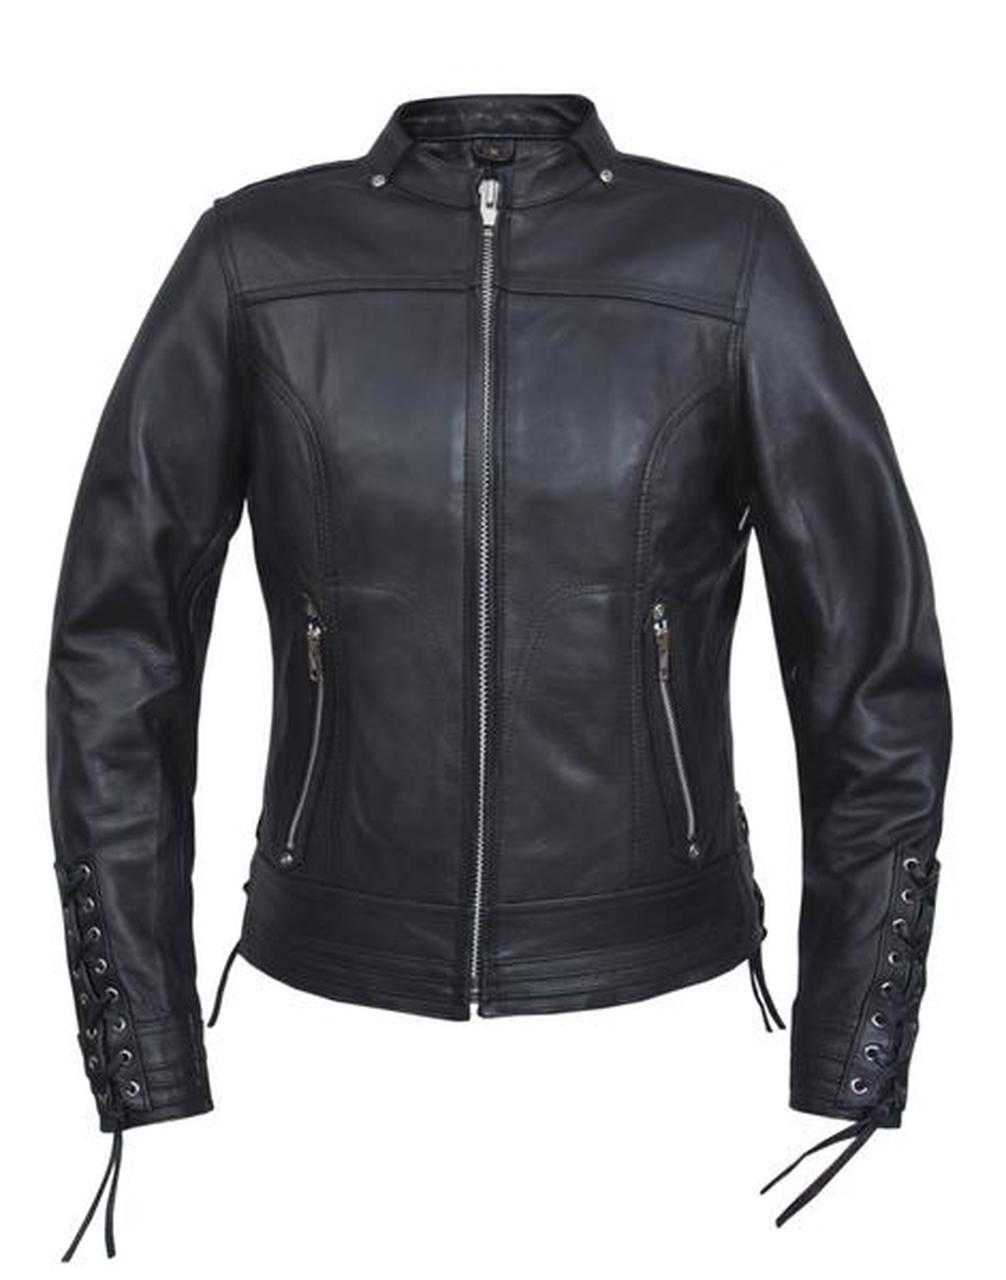 Women's Laced Leather Motorcycle Jacket 6801.PL